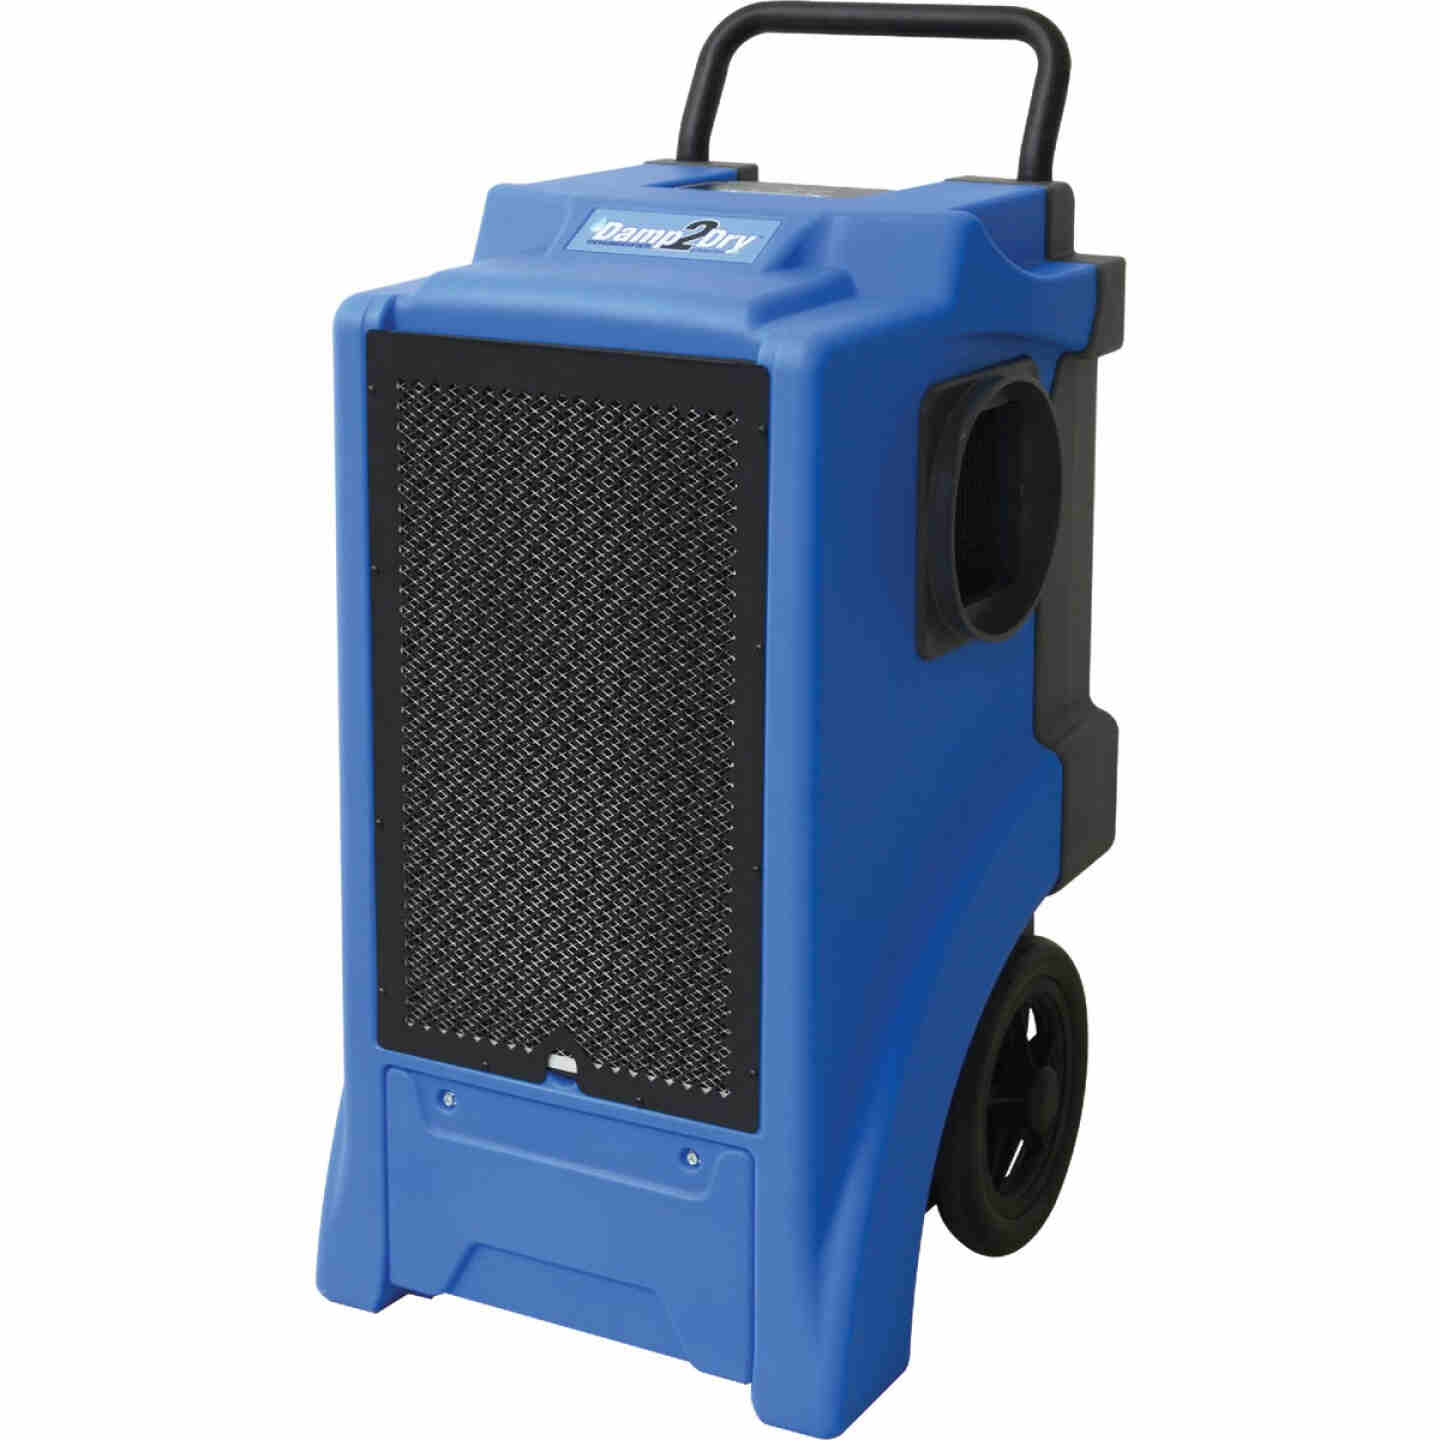 Perfect Aire Damp2Dry 250 Pt./Day 15,500 Sq. Ft. Commercial Dehumidifier Image 2